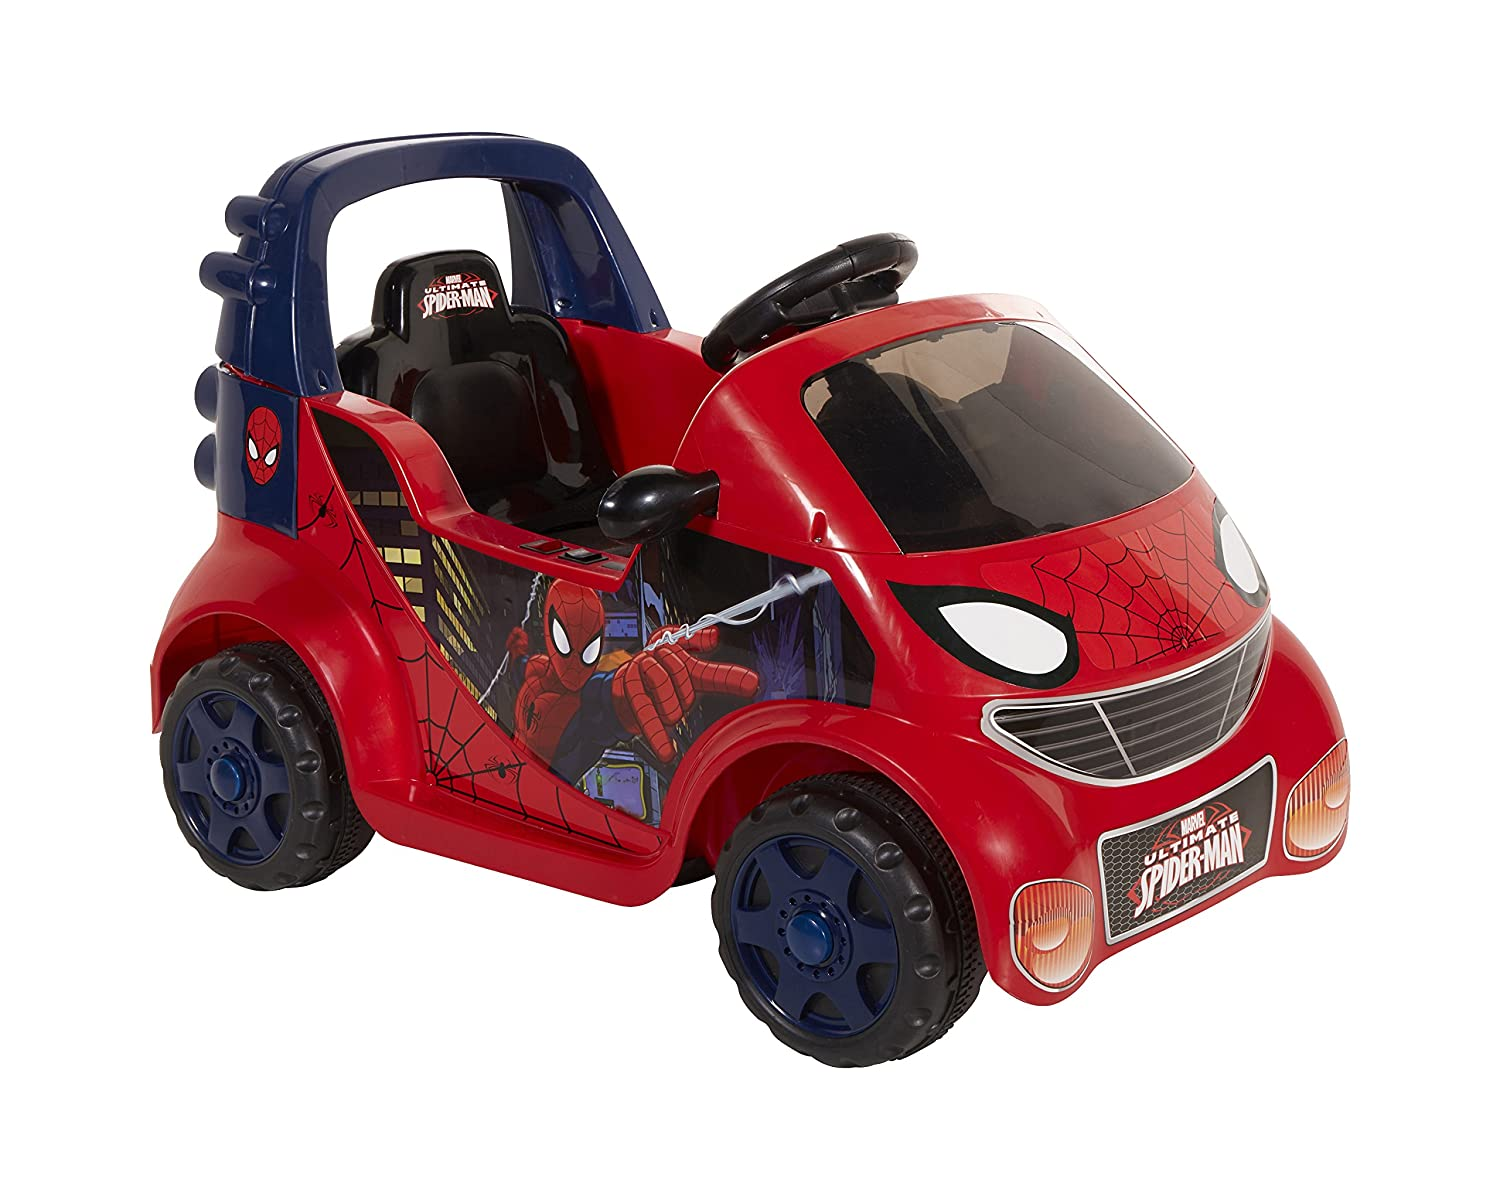 Small Toy Cars For Boys : Car power wheels battery spiderman electric kids ride toy